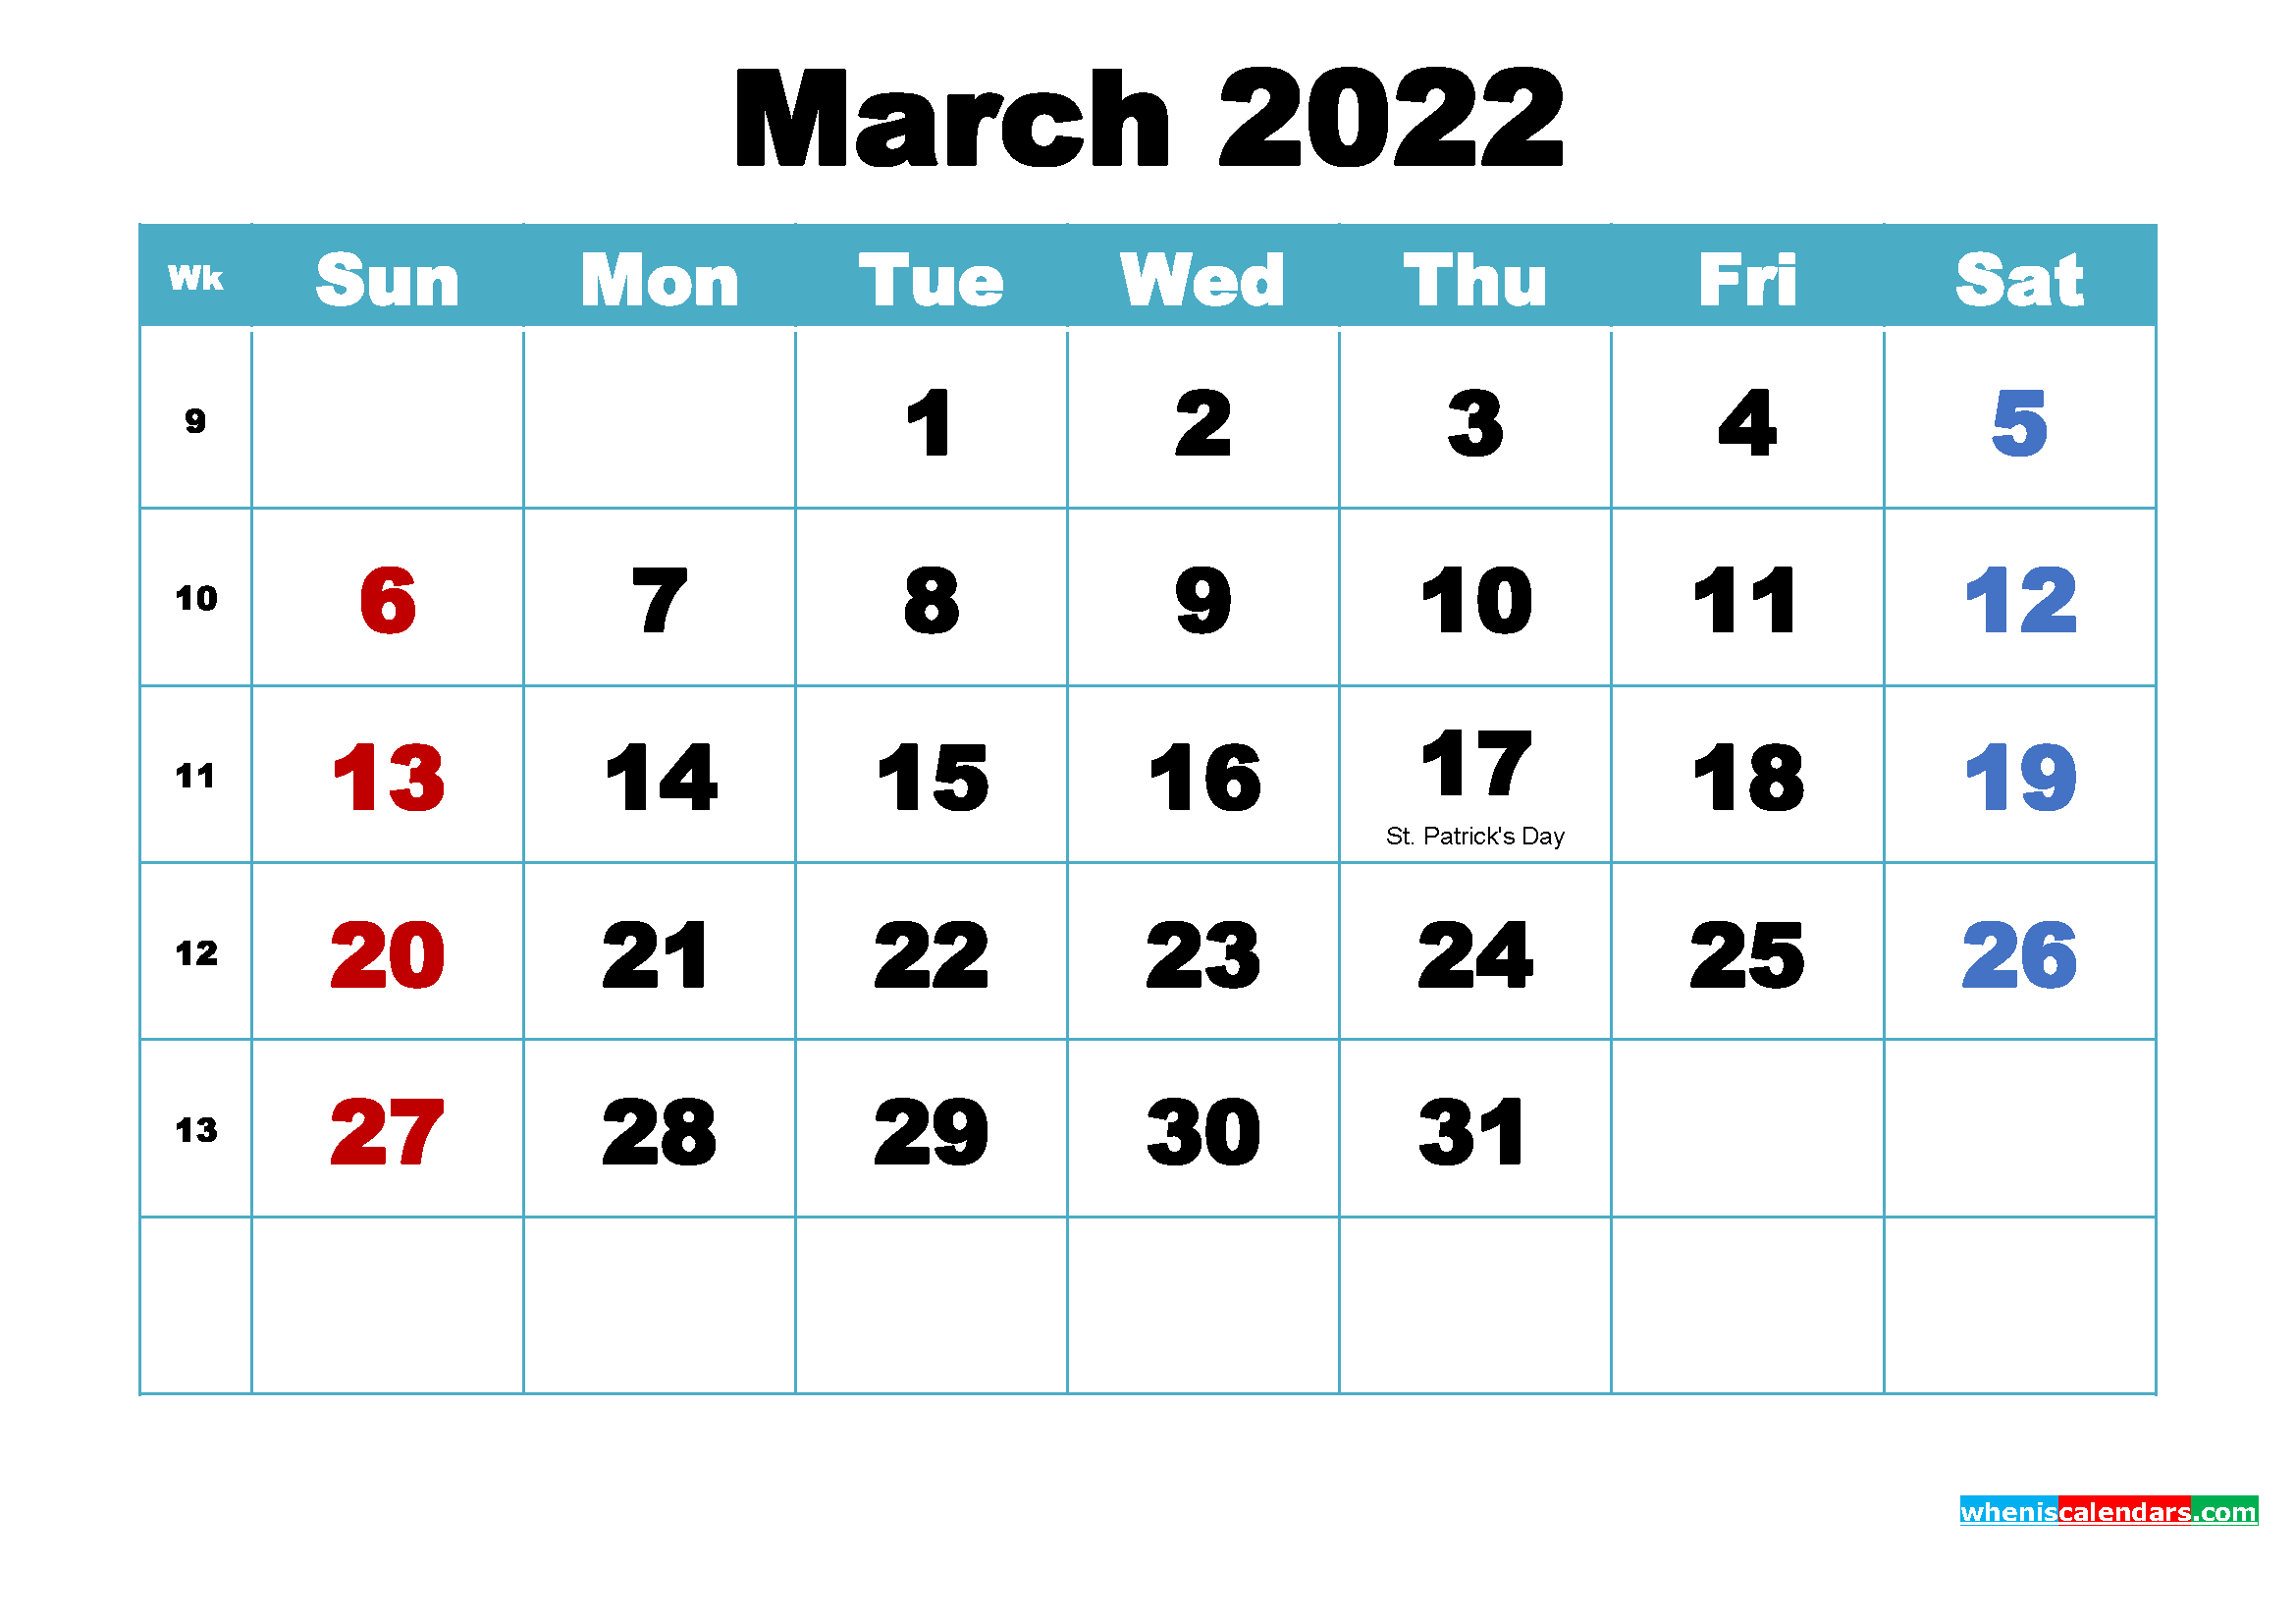 Printable March 2022 Calendar by Month